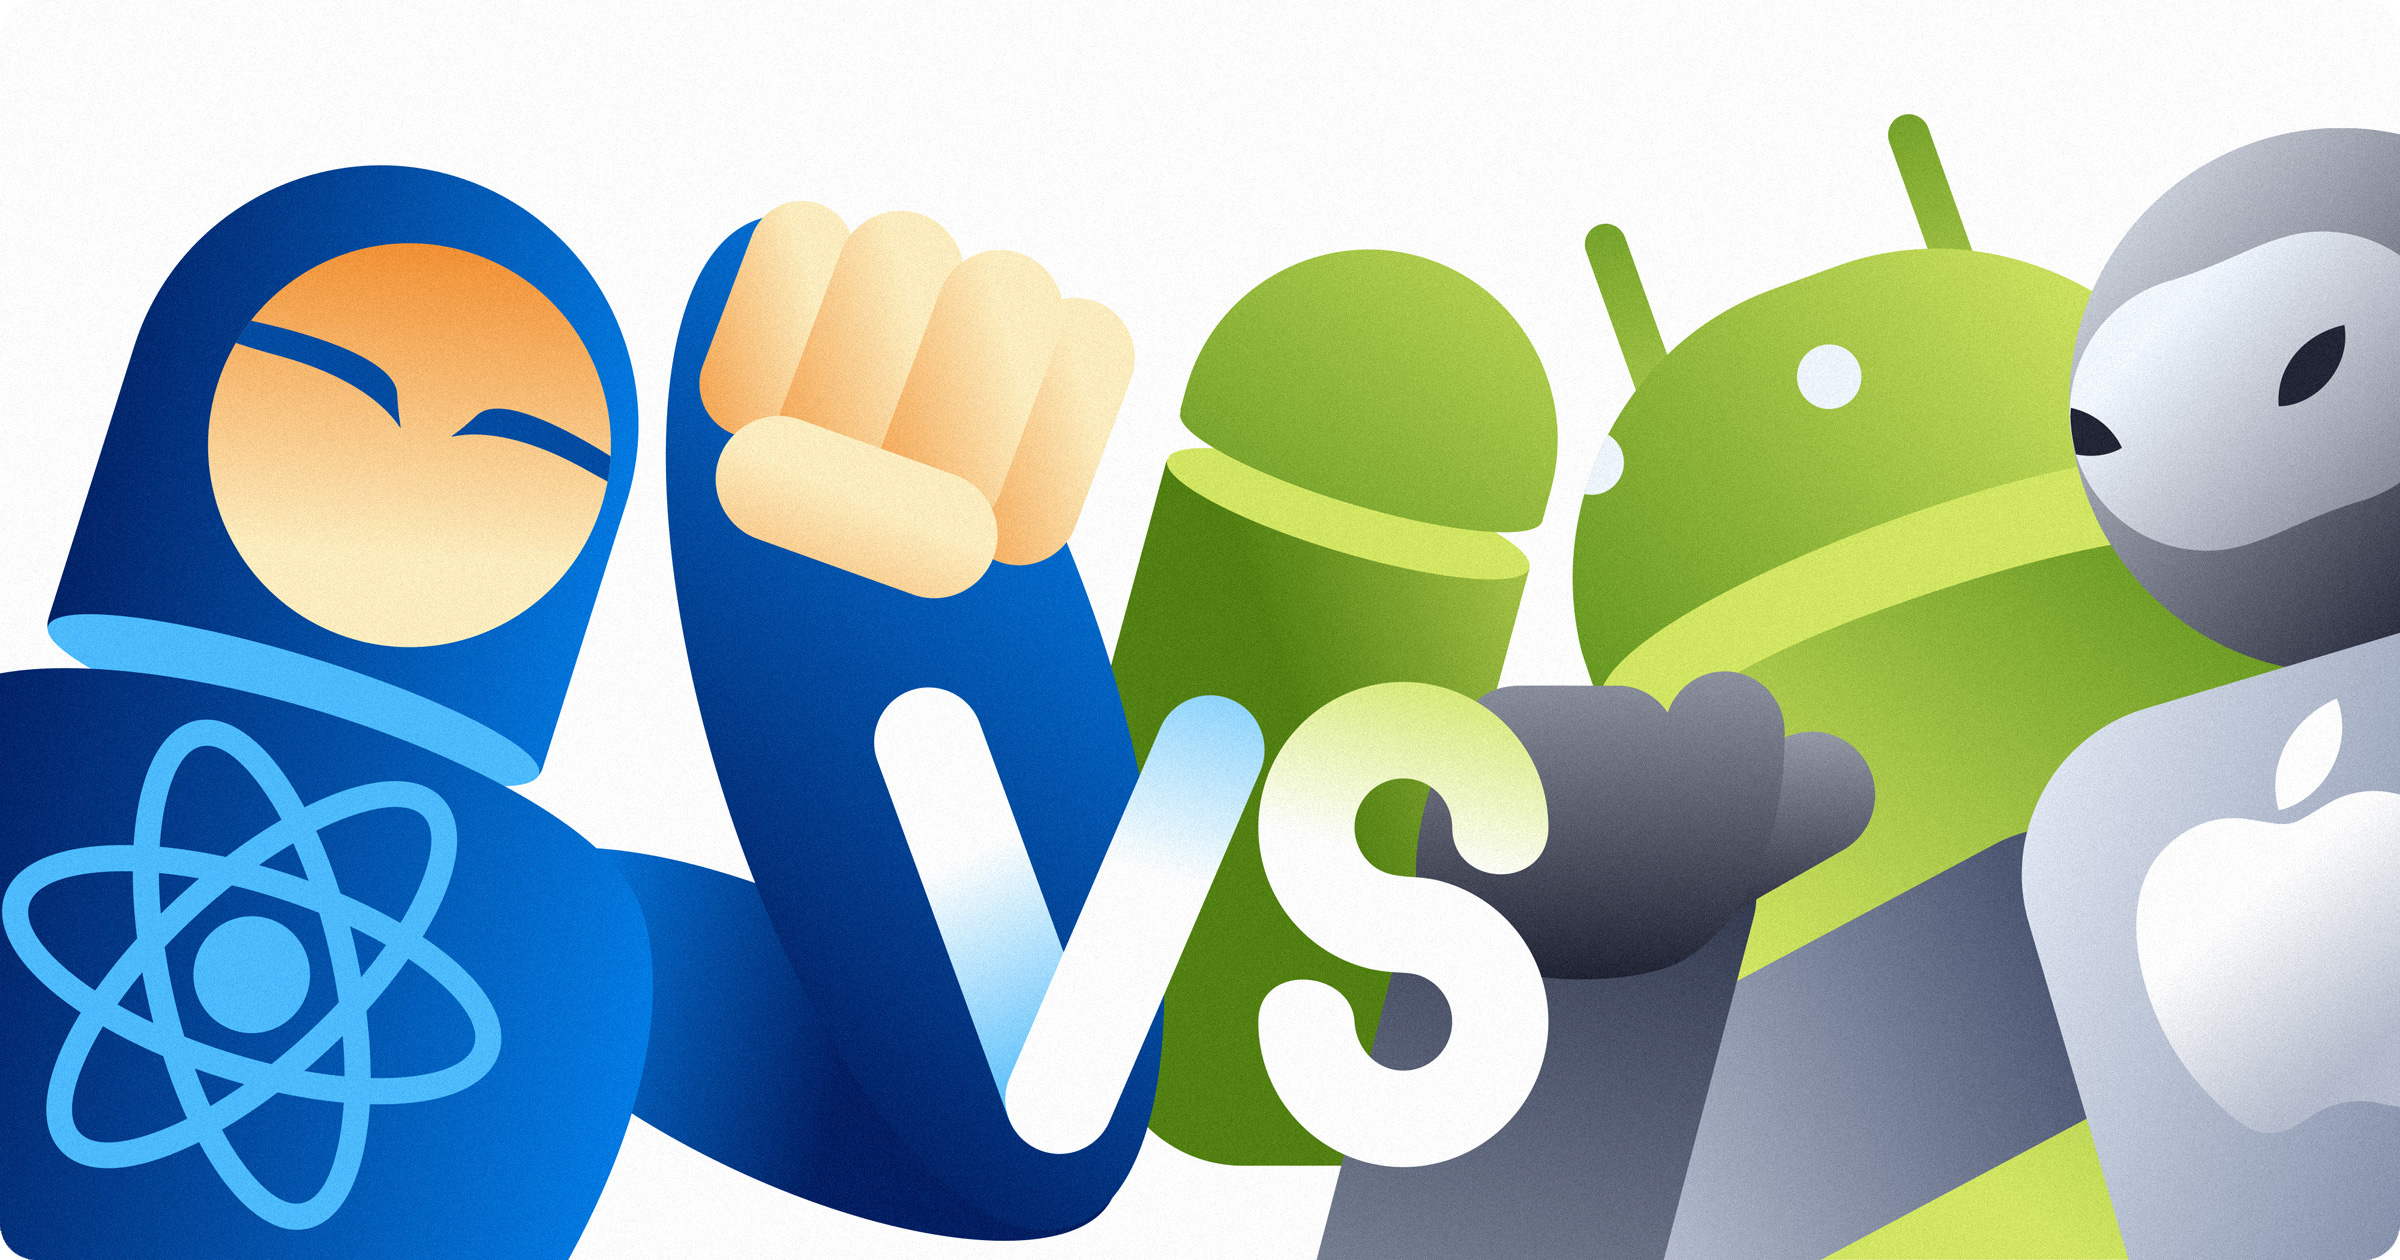 Mobile Development: React Native or iOS with Android?